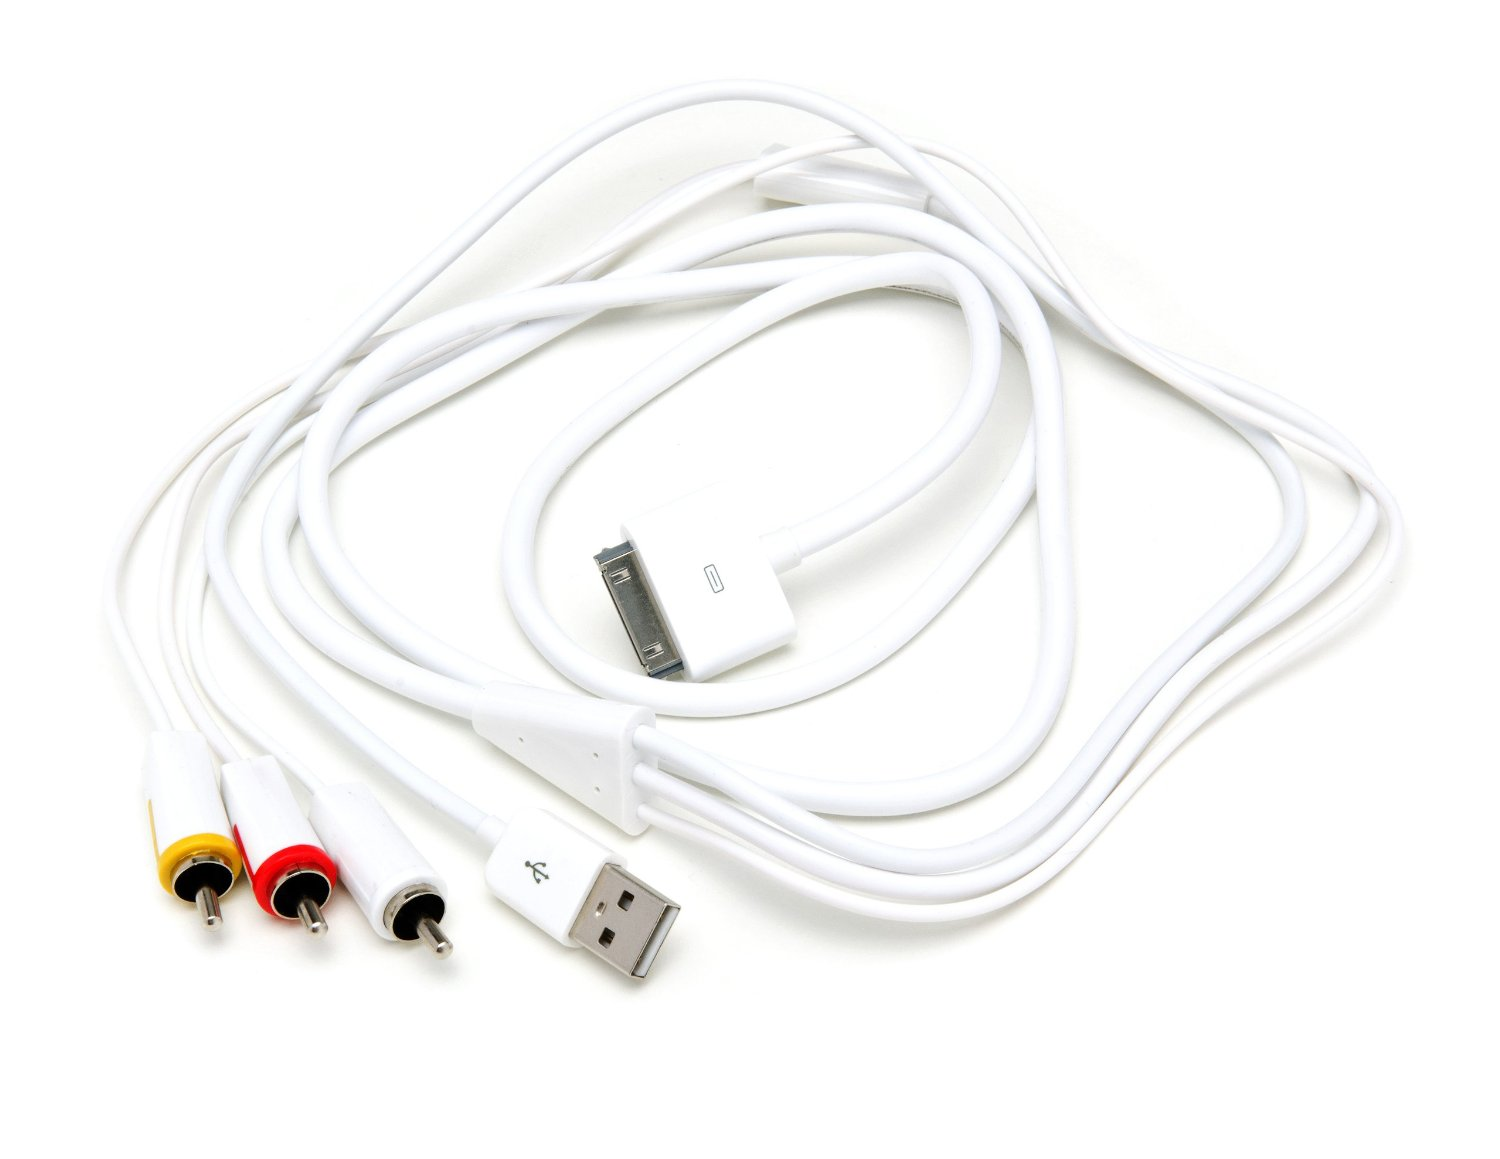 Skiva F101 MediaFlow Composite Video/AV Cable with USB Sync/Charge for iPhone 4S/4, iPad 3, iPad 2, iPhone, iPad and iPod